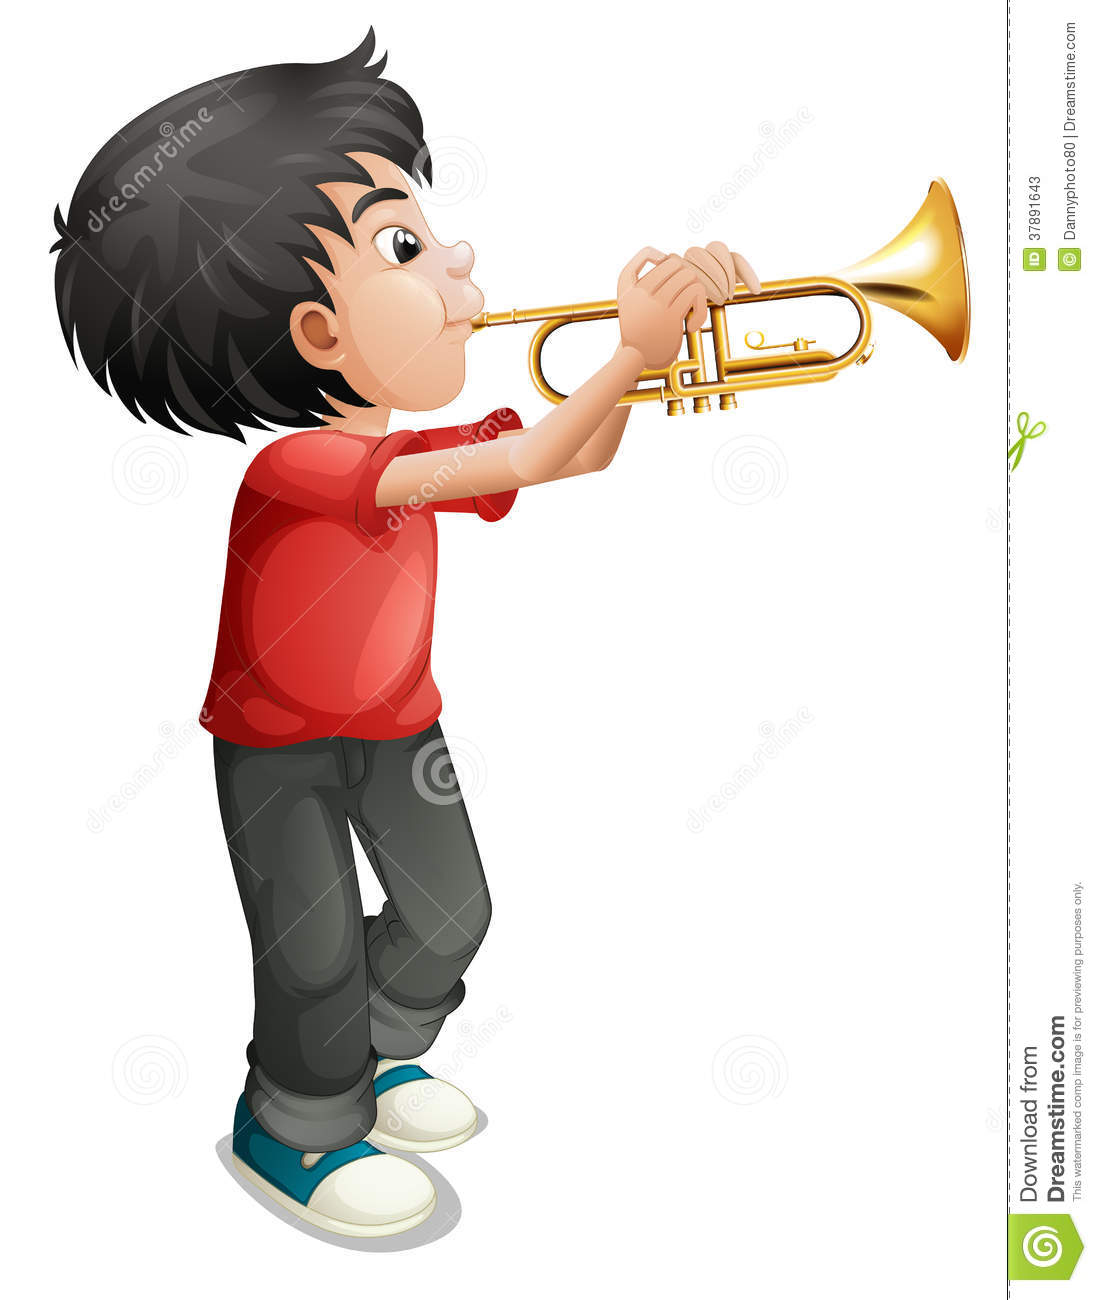 A Boy Playing With His Trombone Stock Photos - Image: 37891643